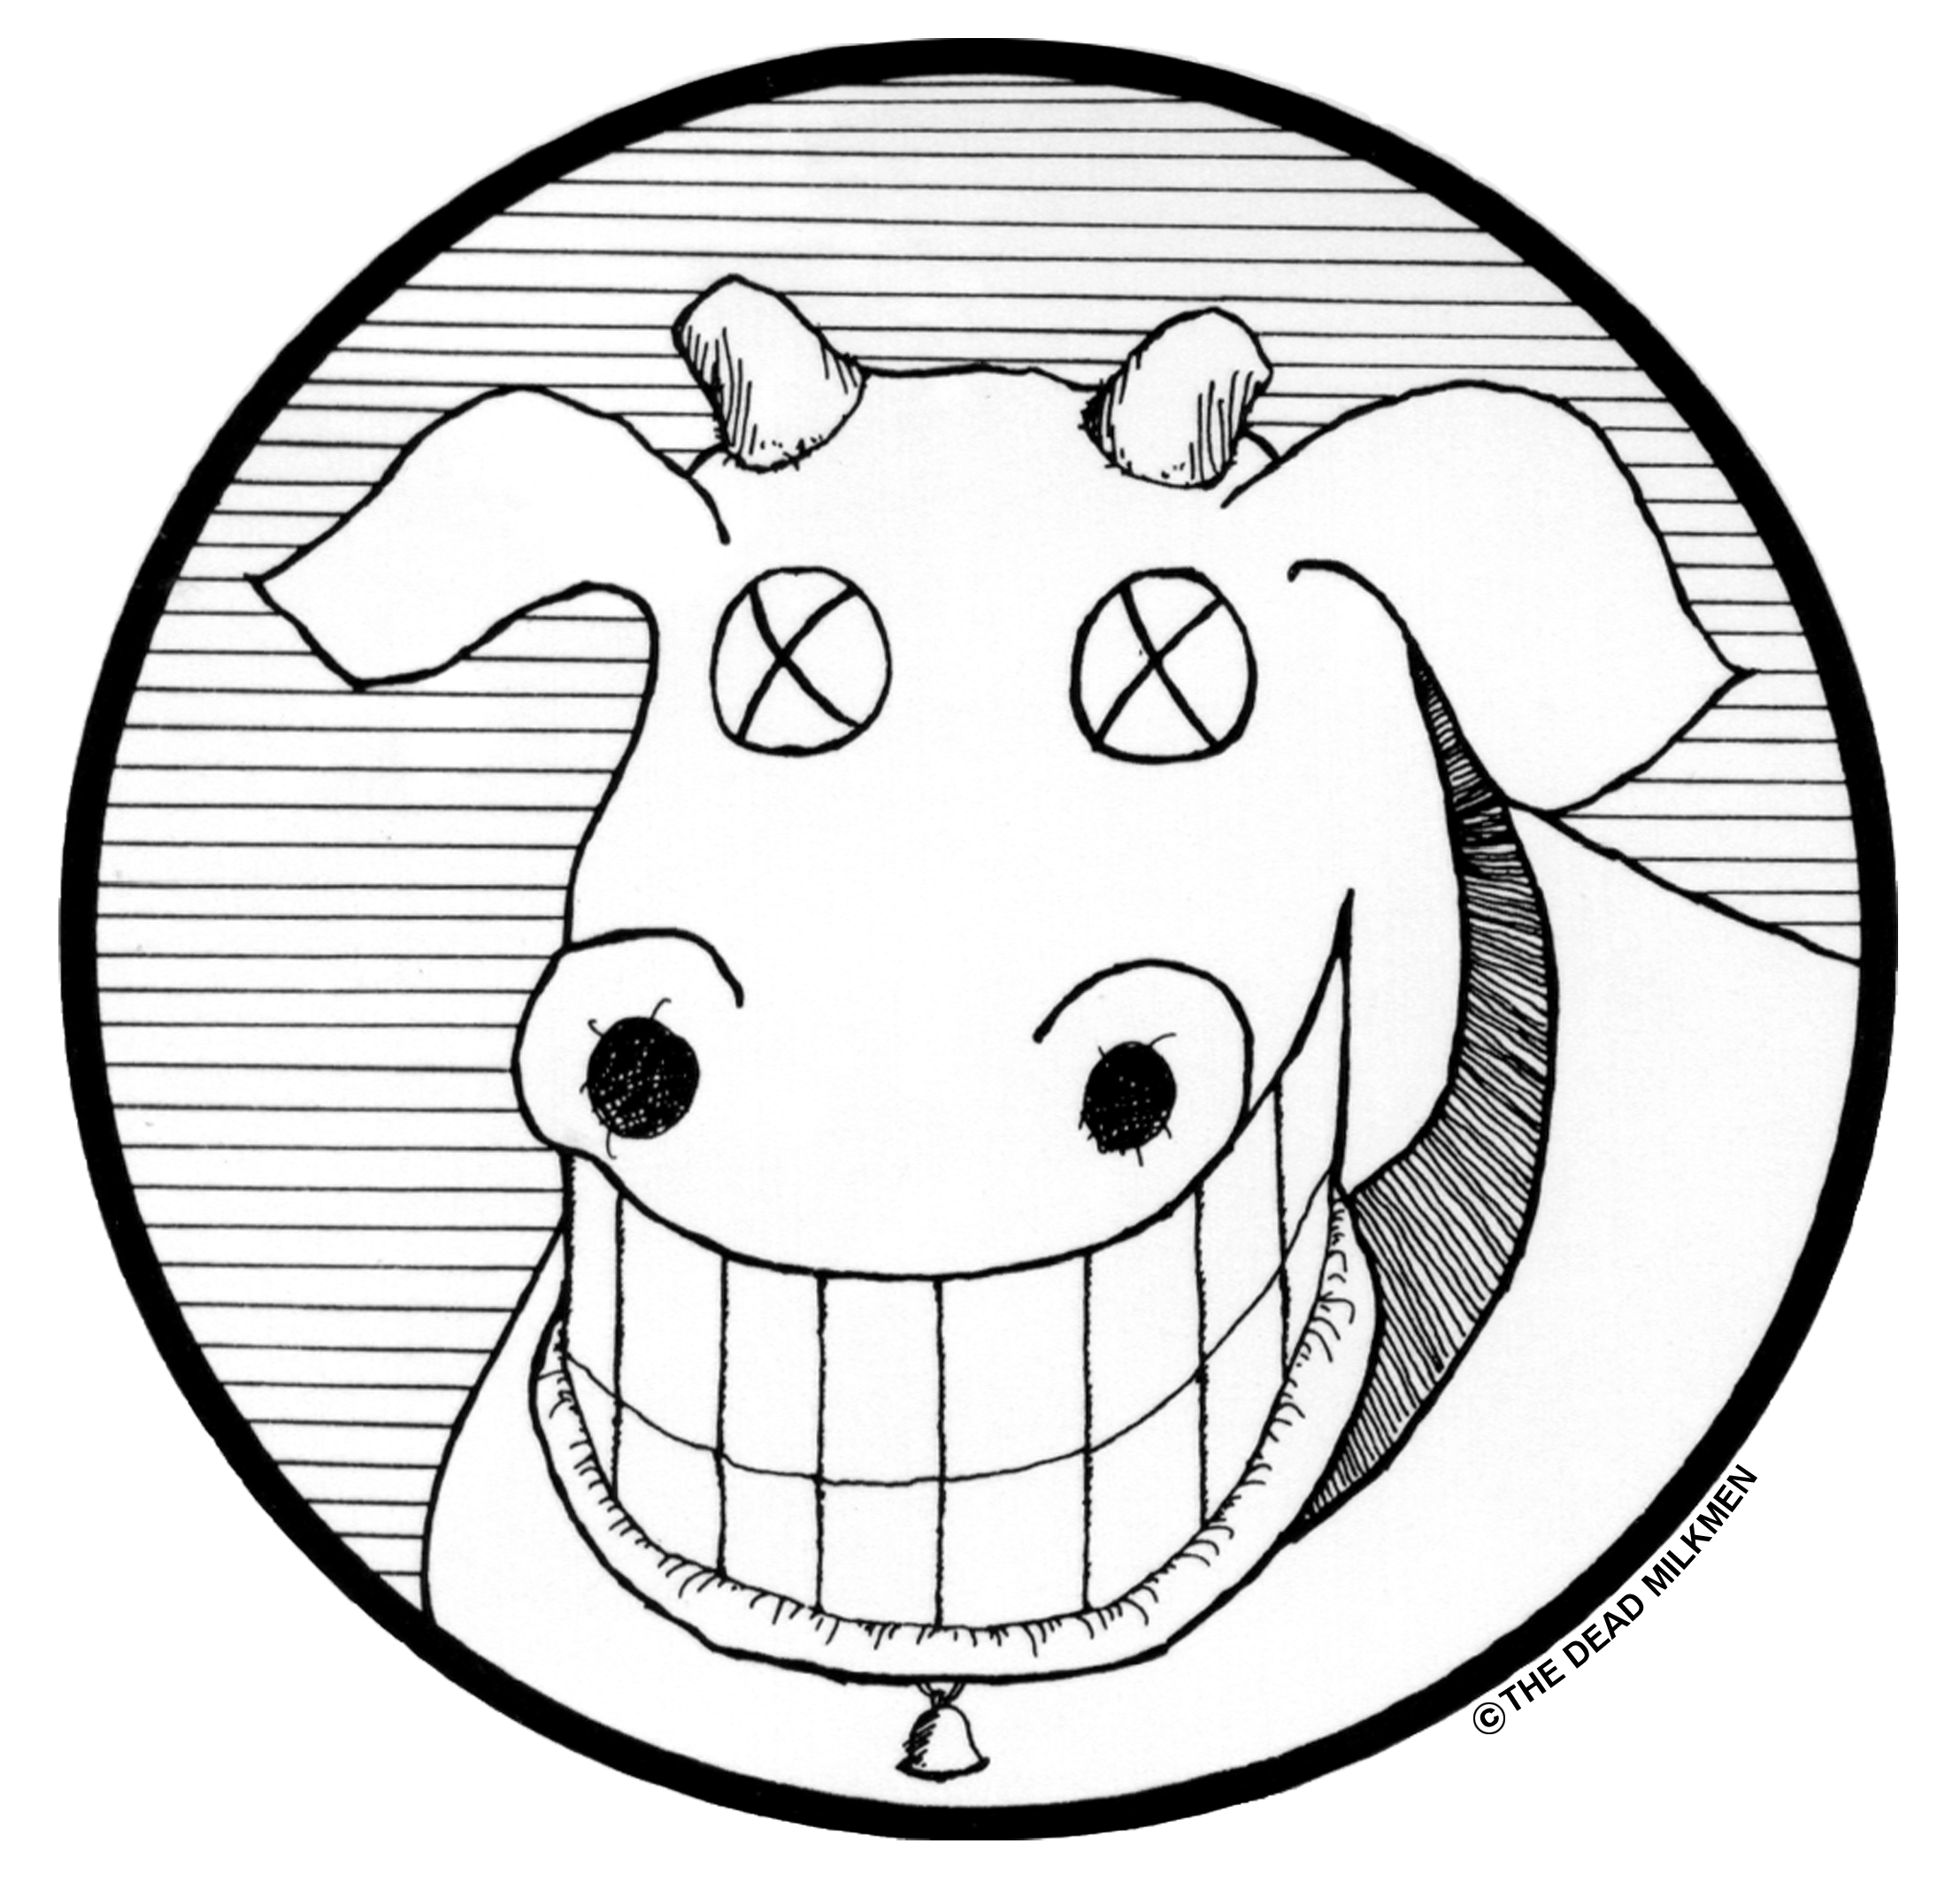 Official Elsie the Cow Dead Milkmen Logo